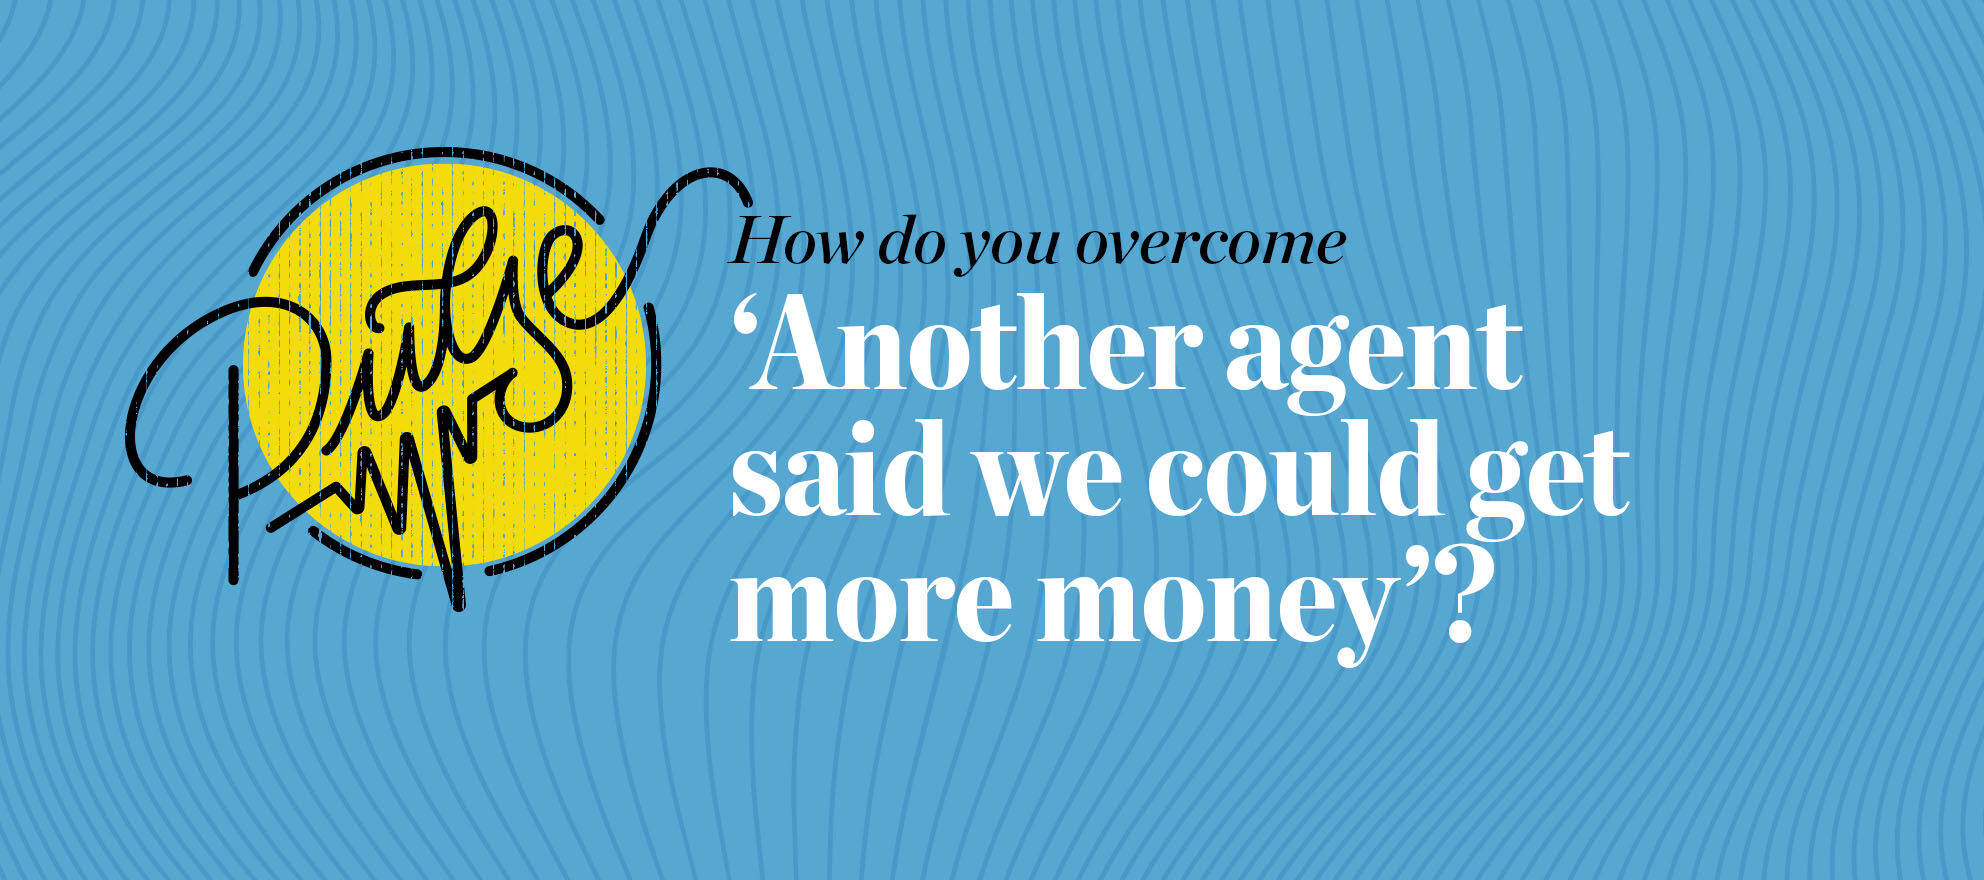 Pulse: How do you overcome 'Another agent said we could get more money'?